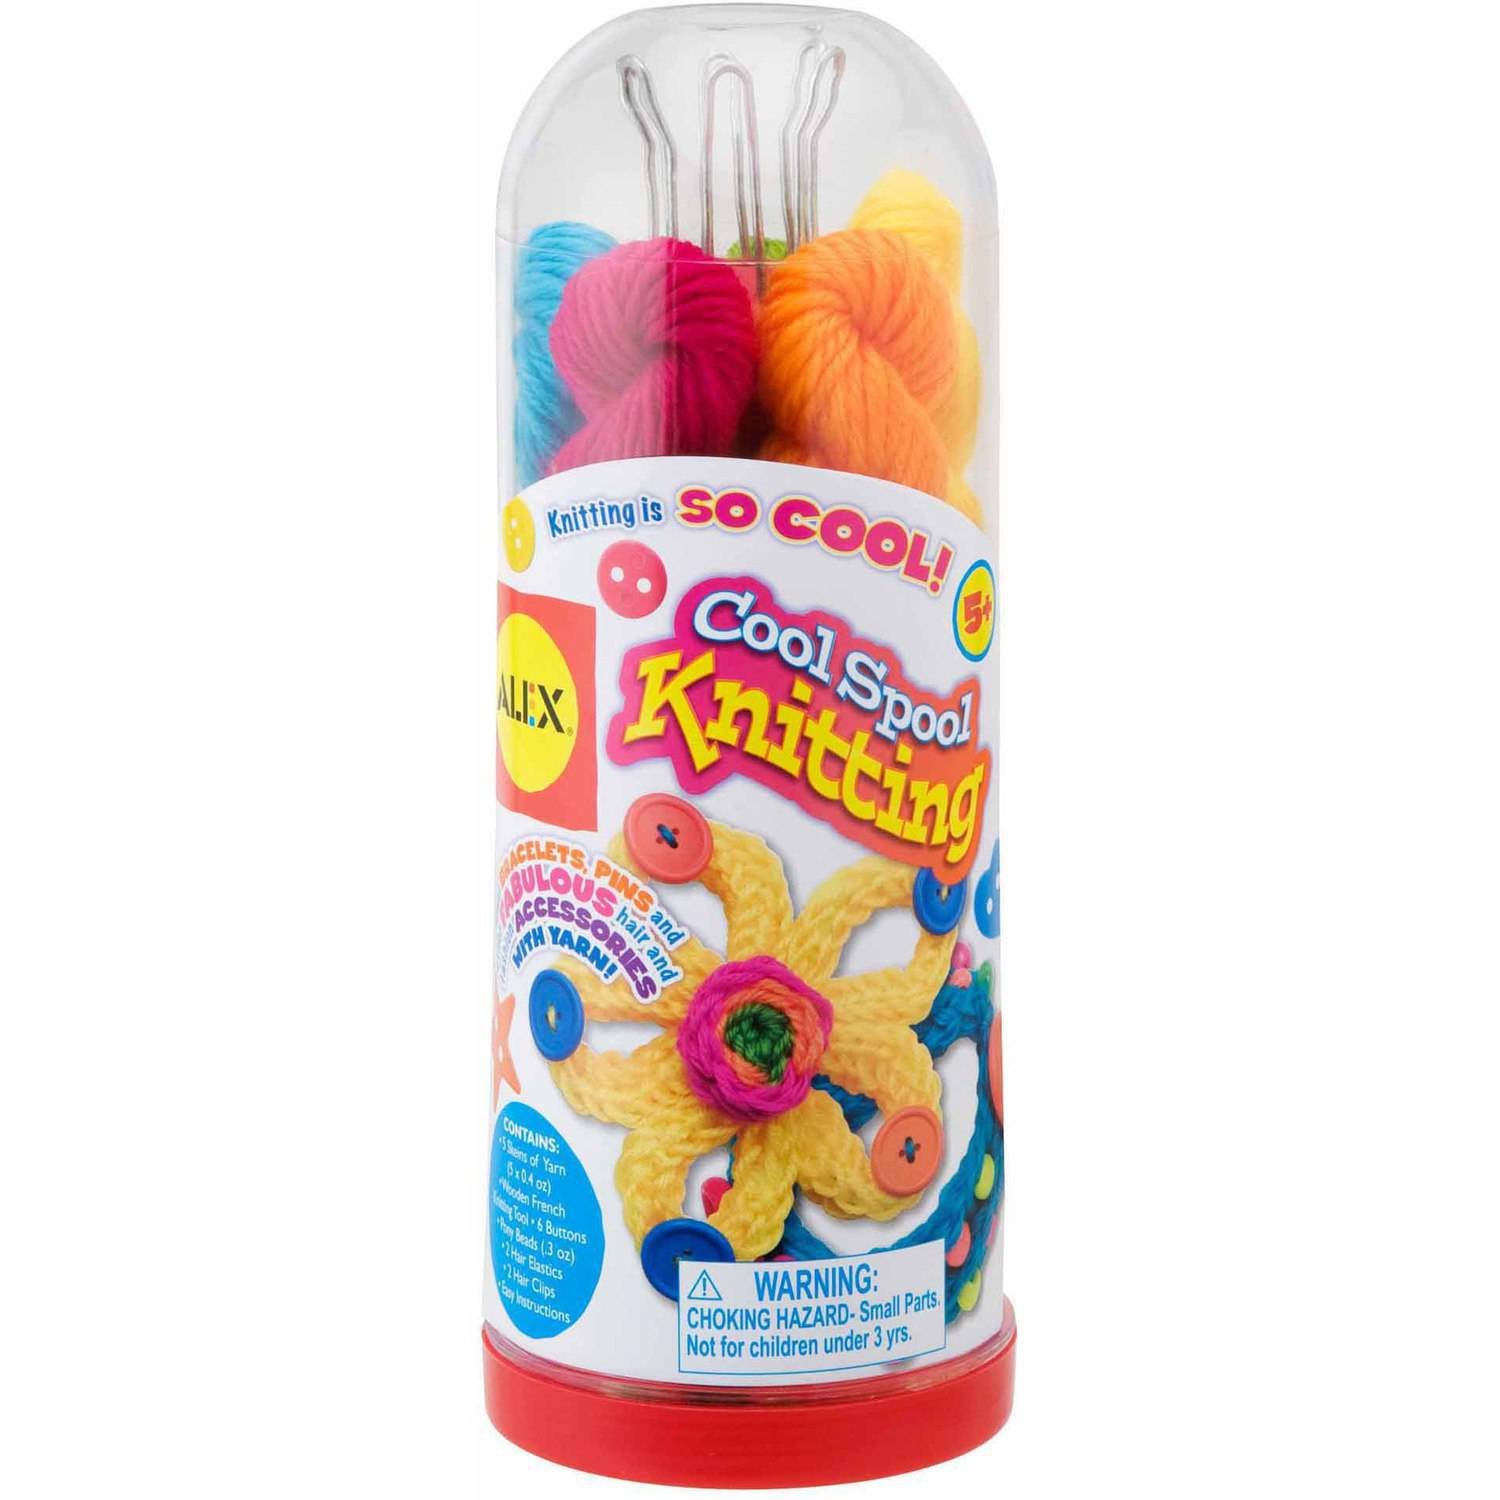 ALEX Toys Craft Cool Spool Knitting